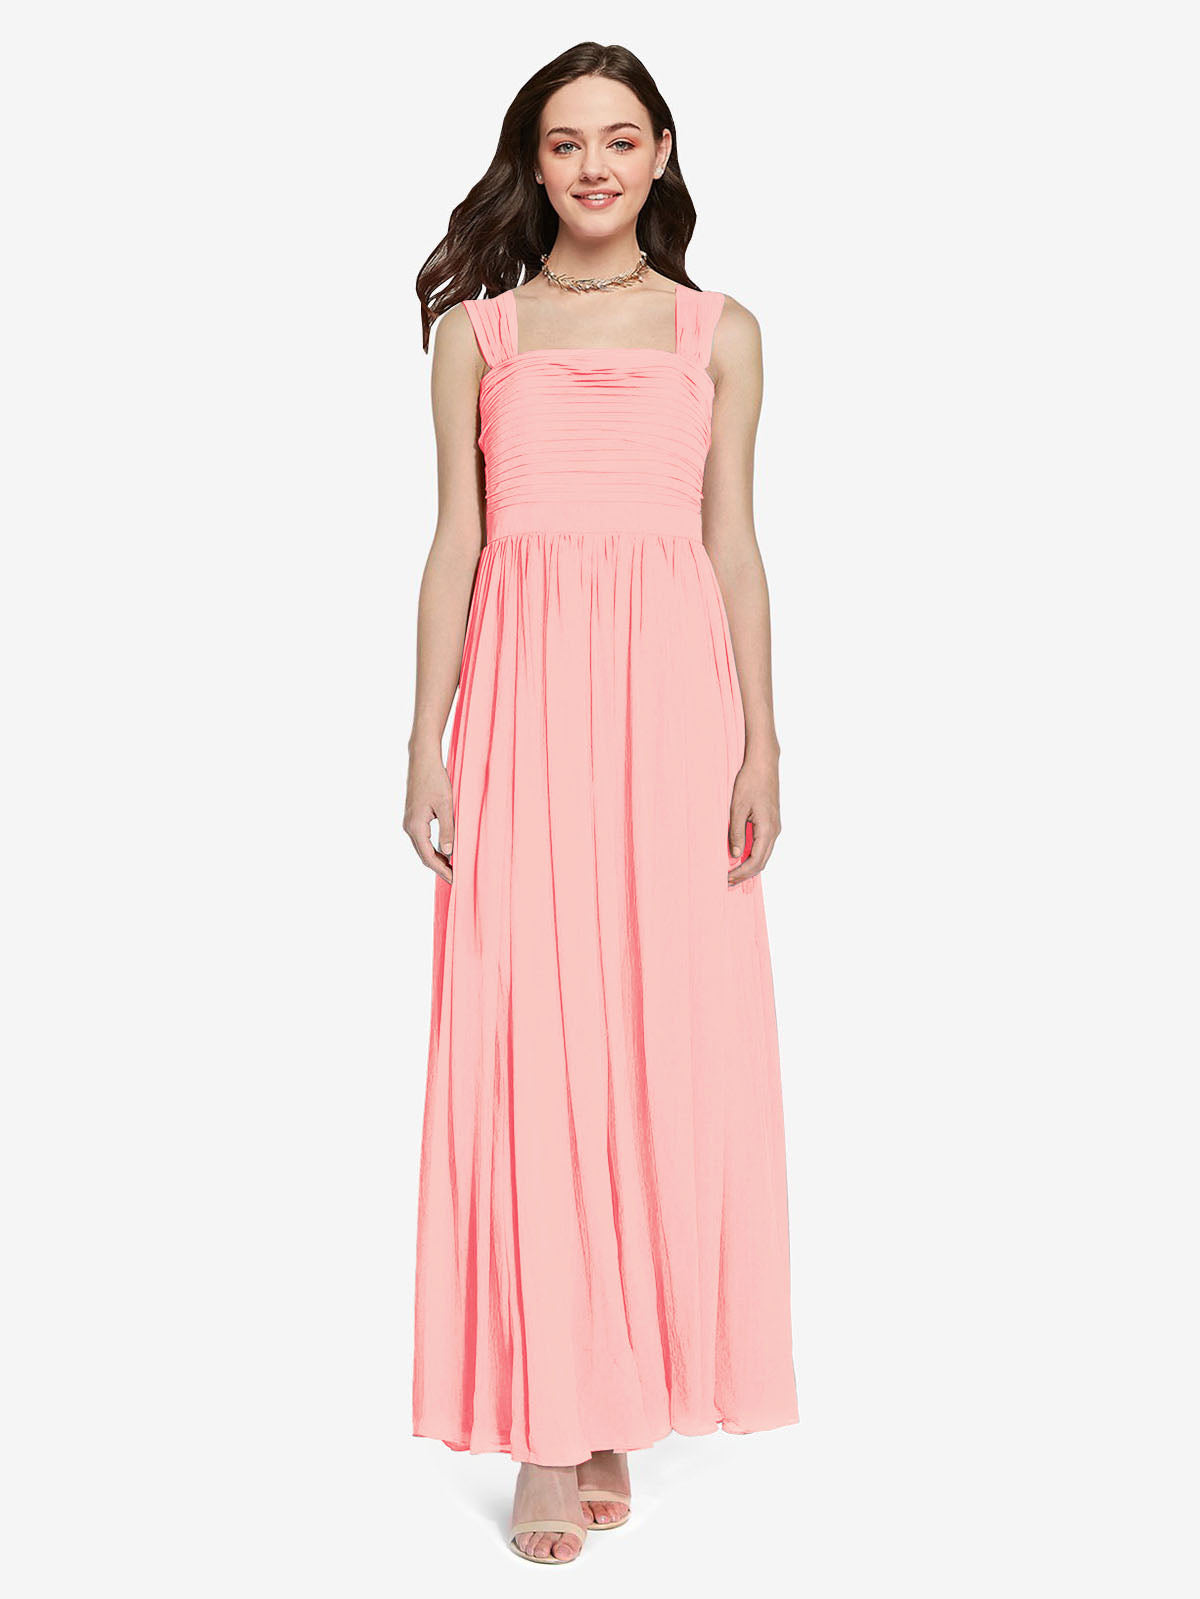 Long A-Line Square Sleeveless Salmon Chiffon Bridesmaid Dress Aldridge